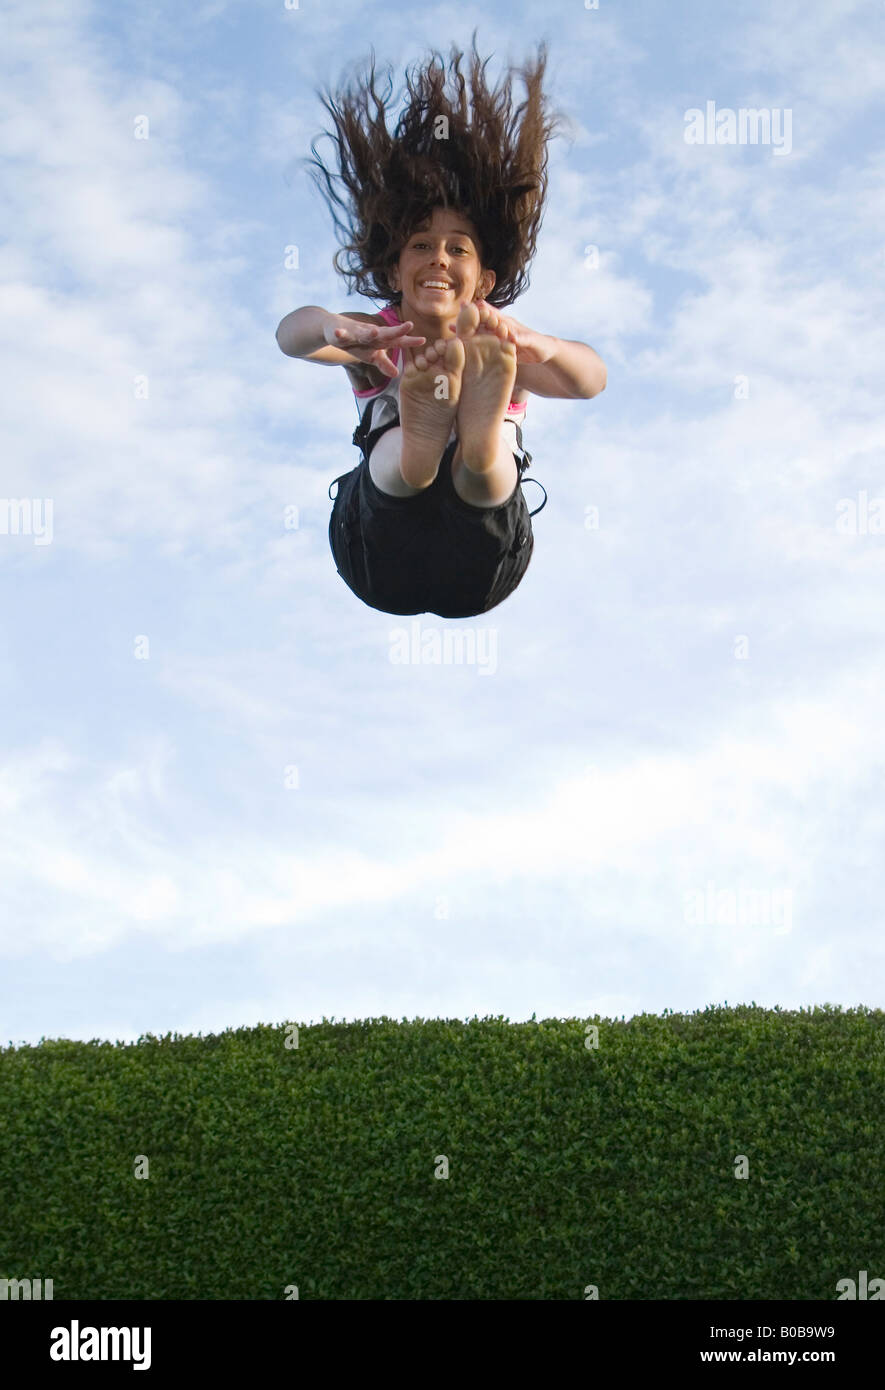 a-teenage-girl-jumping-and-descending-on-a-trampoline-uk-B0B9W9.jpg